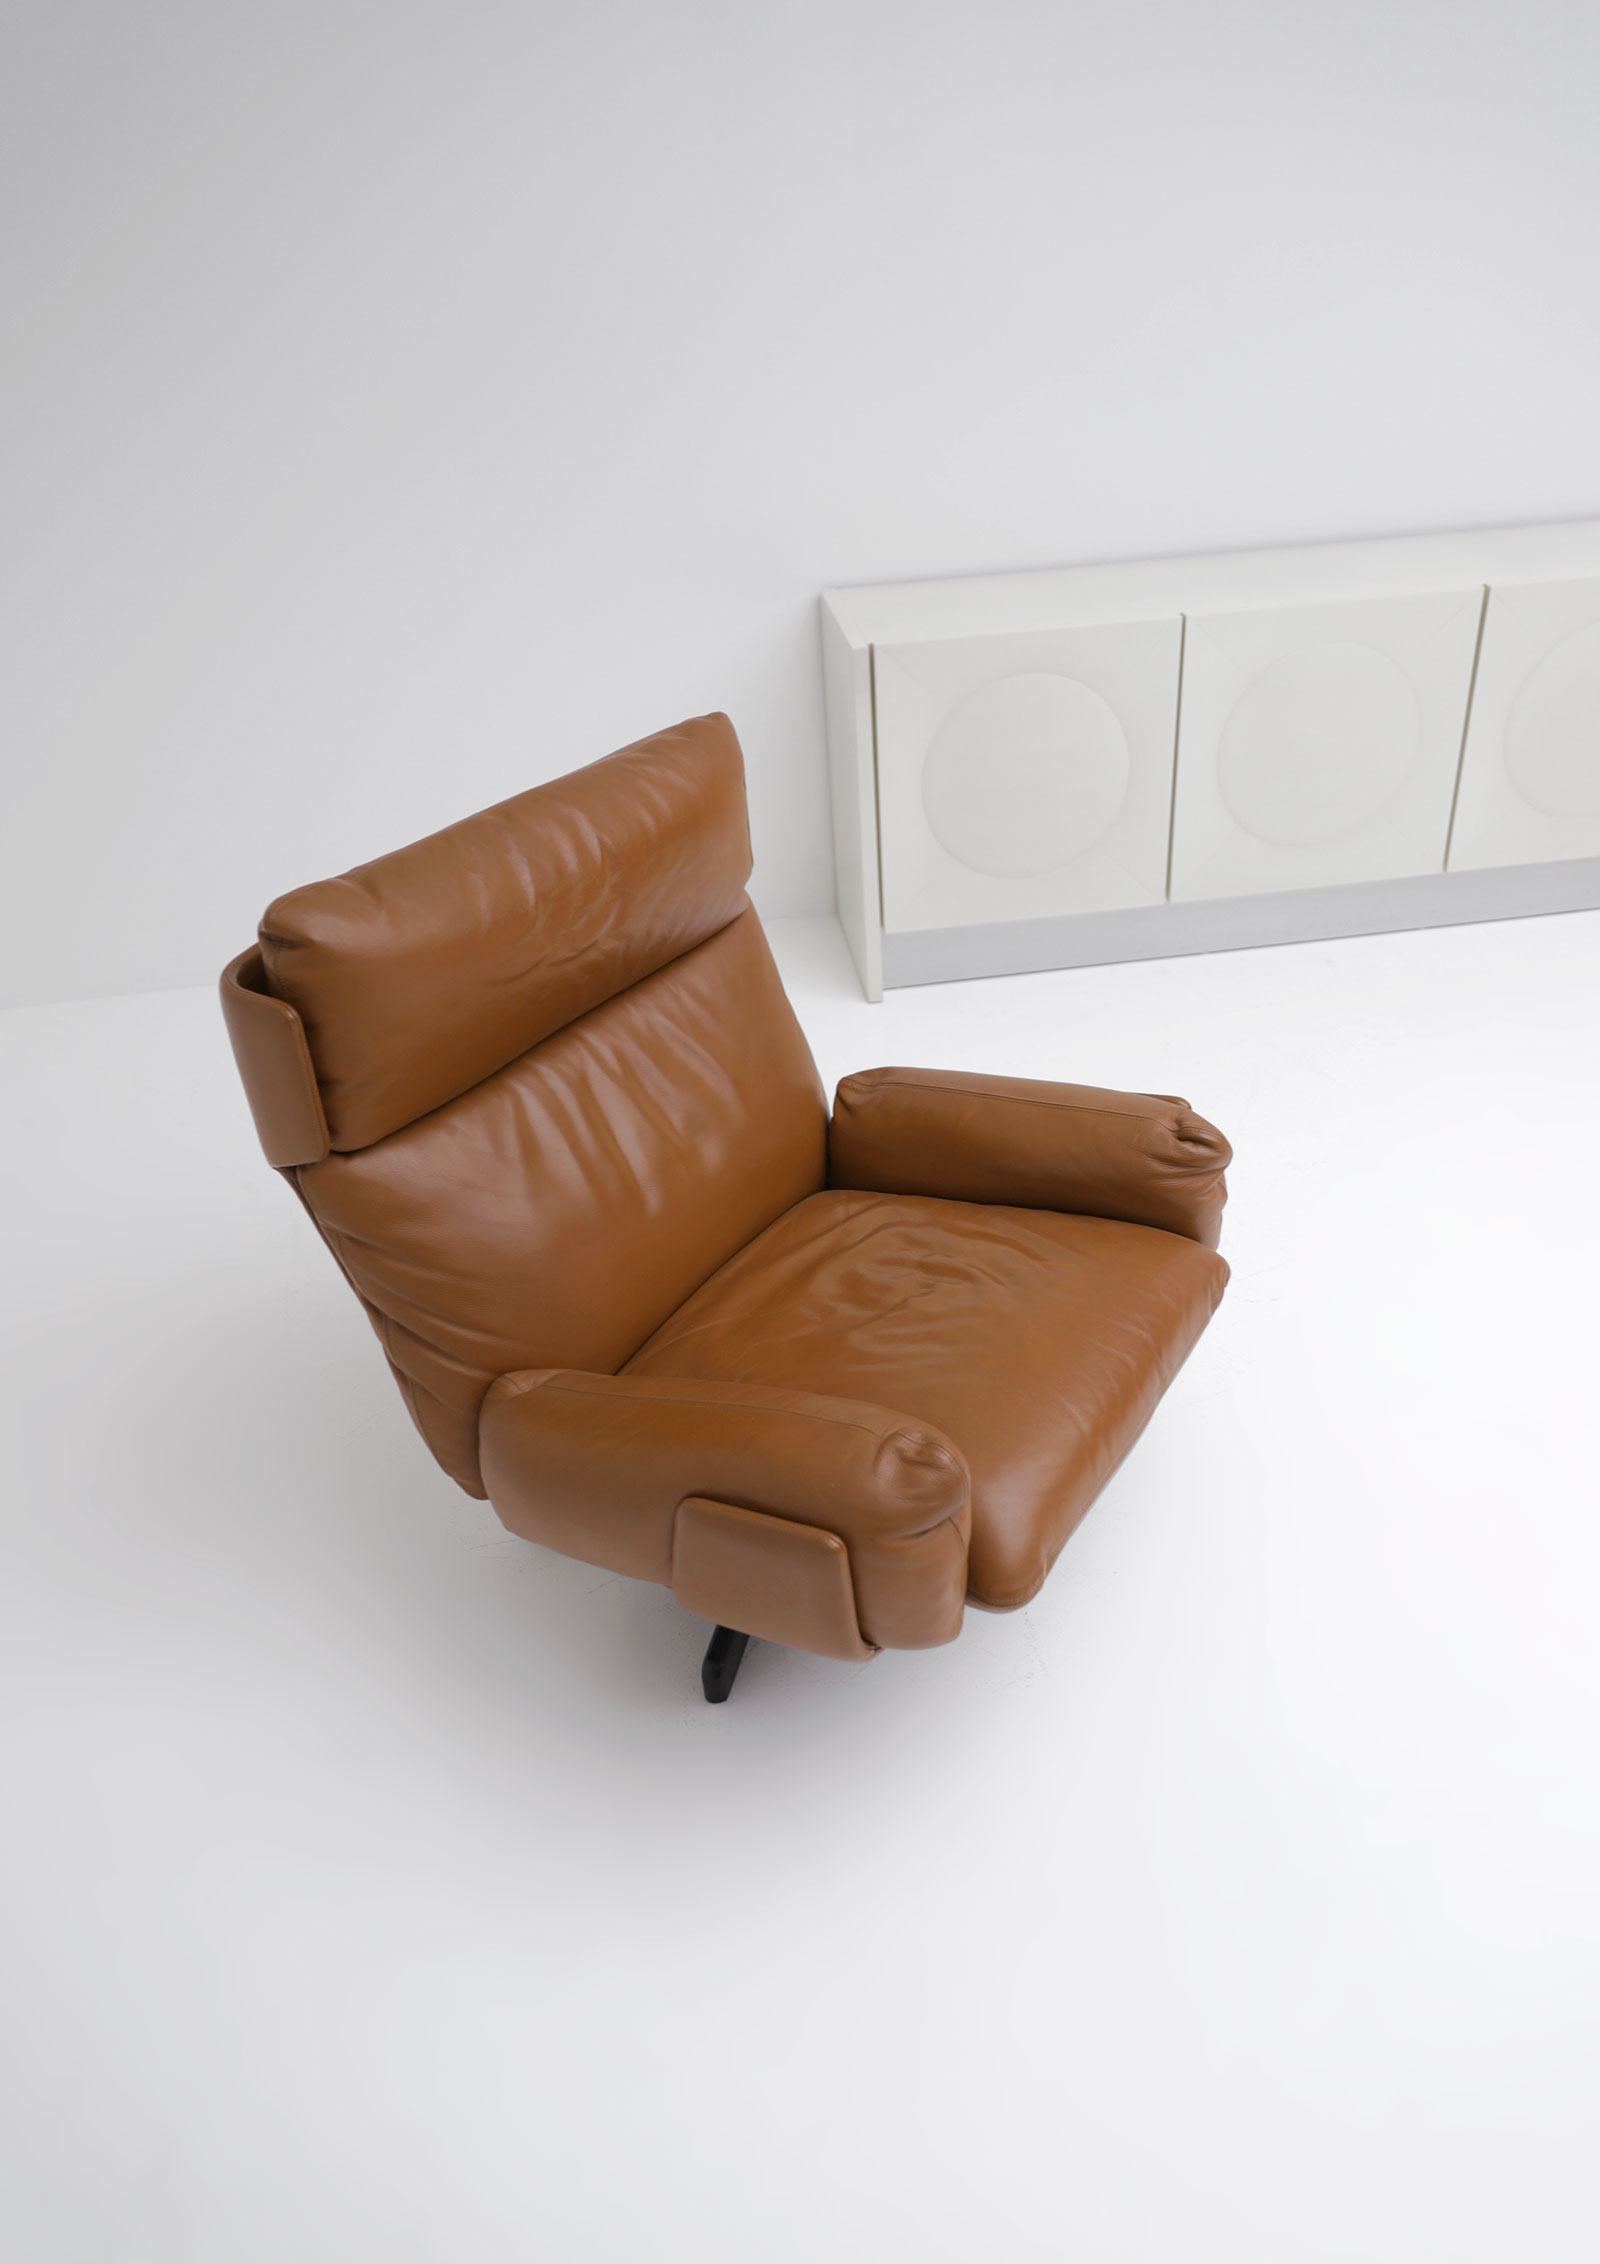 Durlet Lounge Chair 1976 Heiner Golz